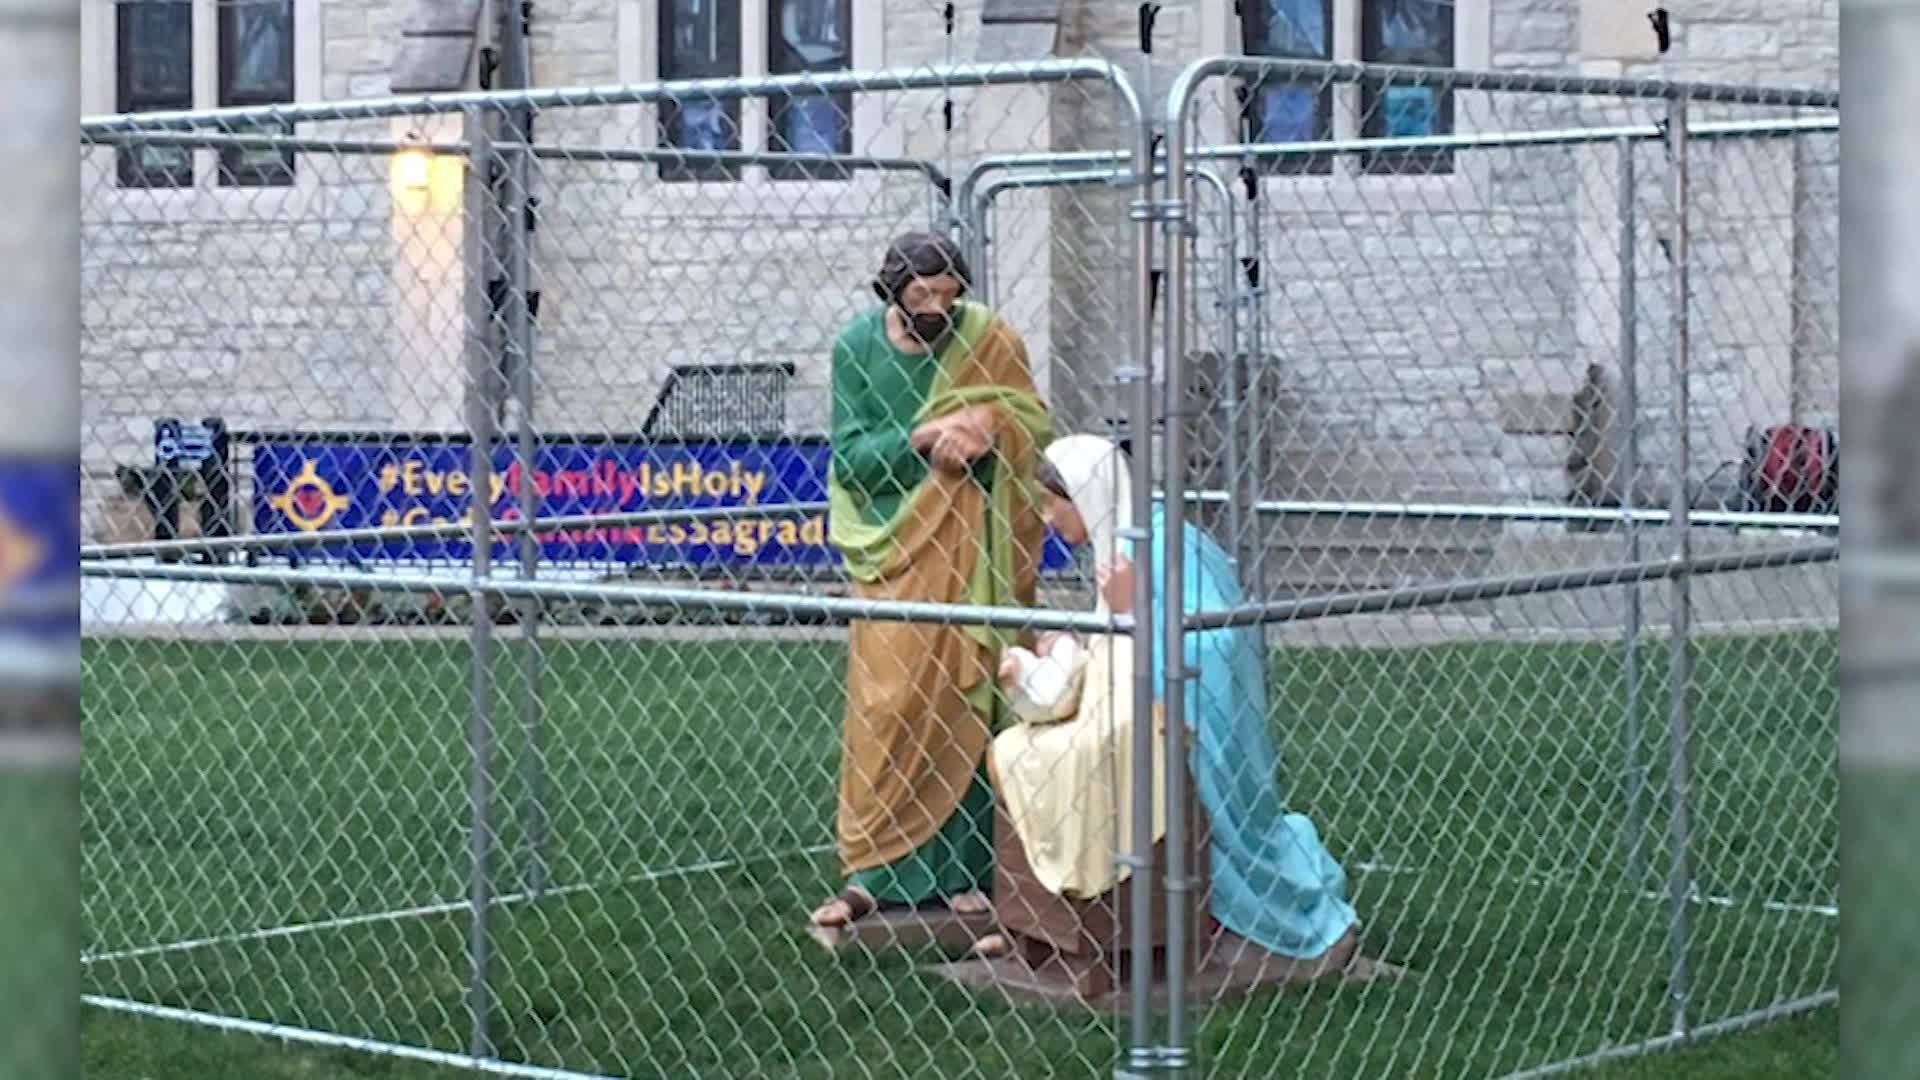 Church fences in Jesus, Mary, Joseph to protest immigration policy